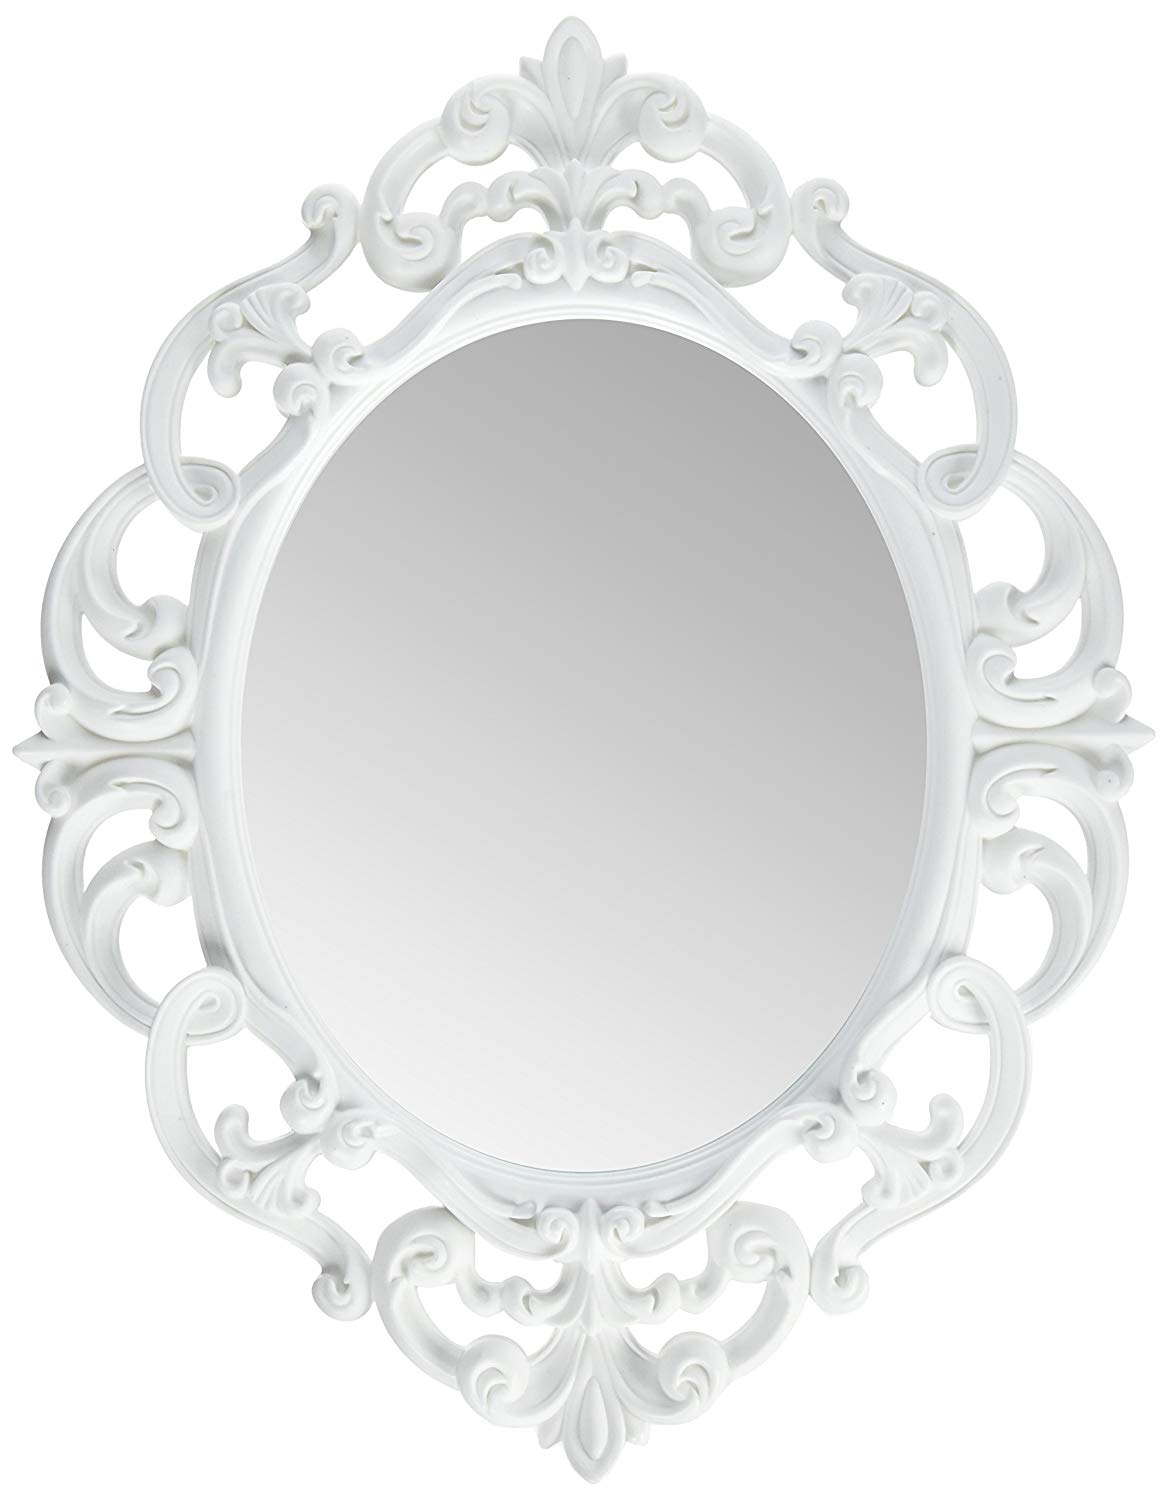 Popular Kole White Oval Vintage Wall Mirror Intended For Classic Wall Mirrors (View 5 of 20)